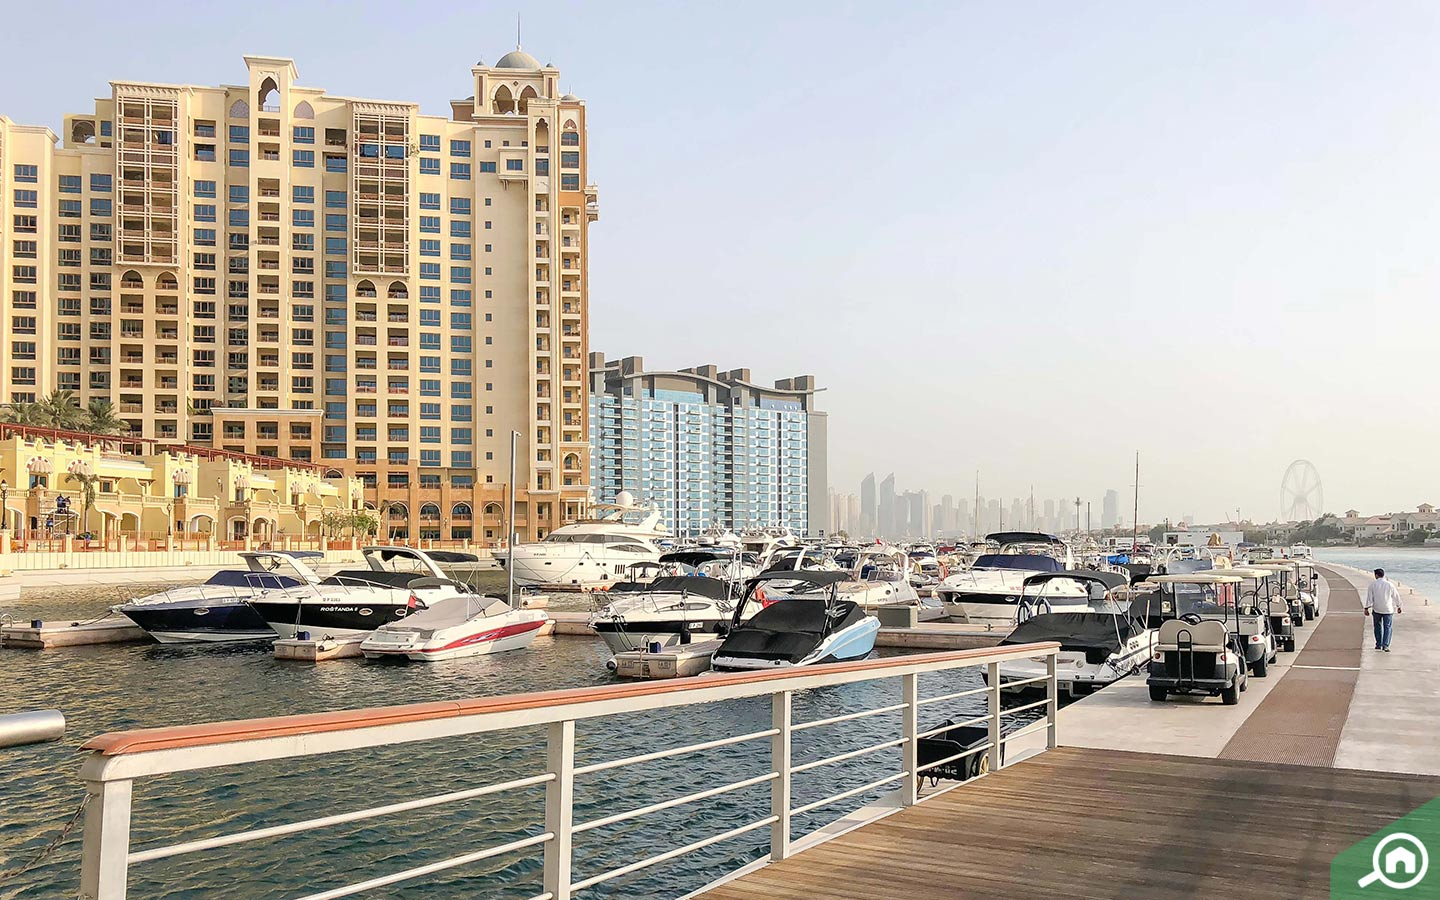 View of Shoreline apartments on Palm Jumeirah, one of the freehold areas in Dubai